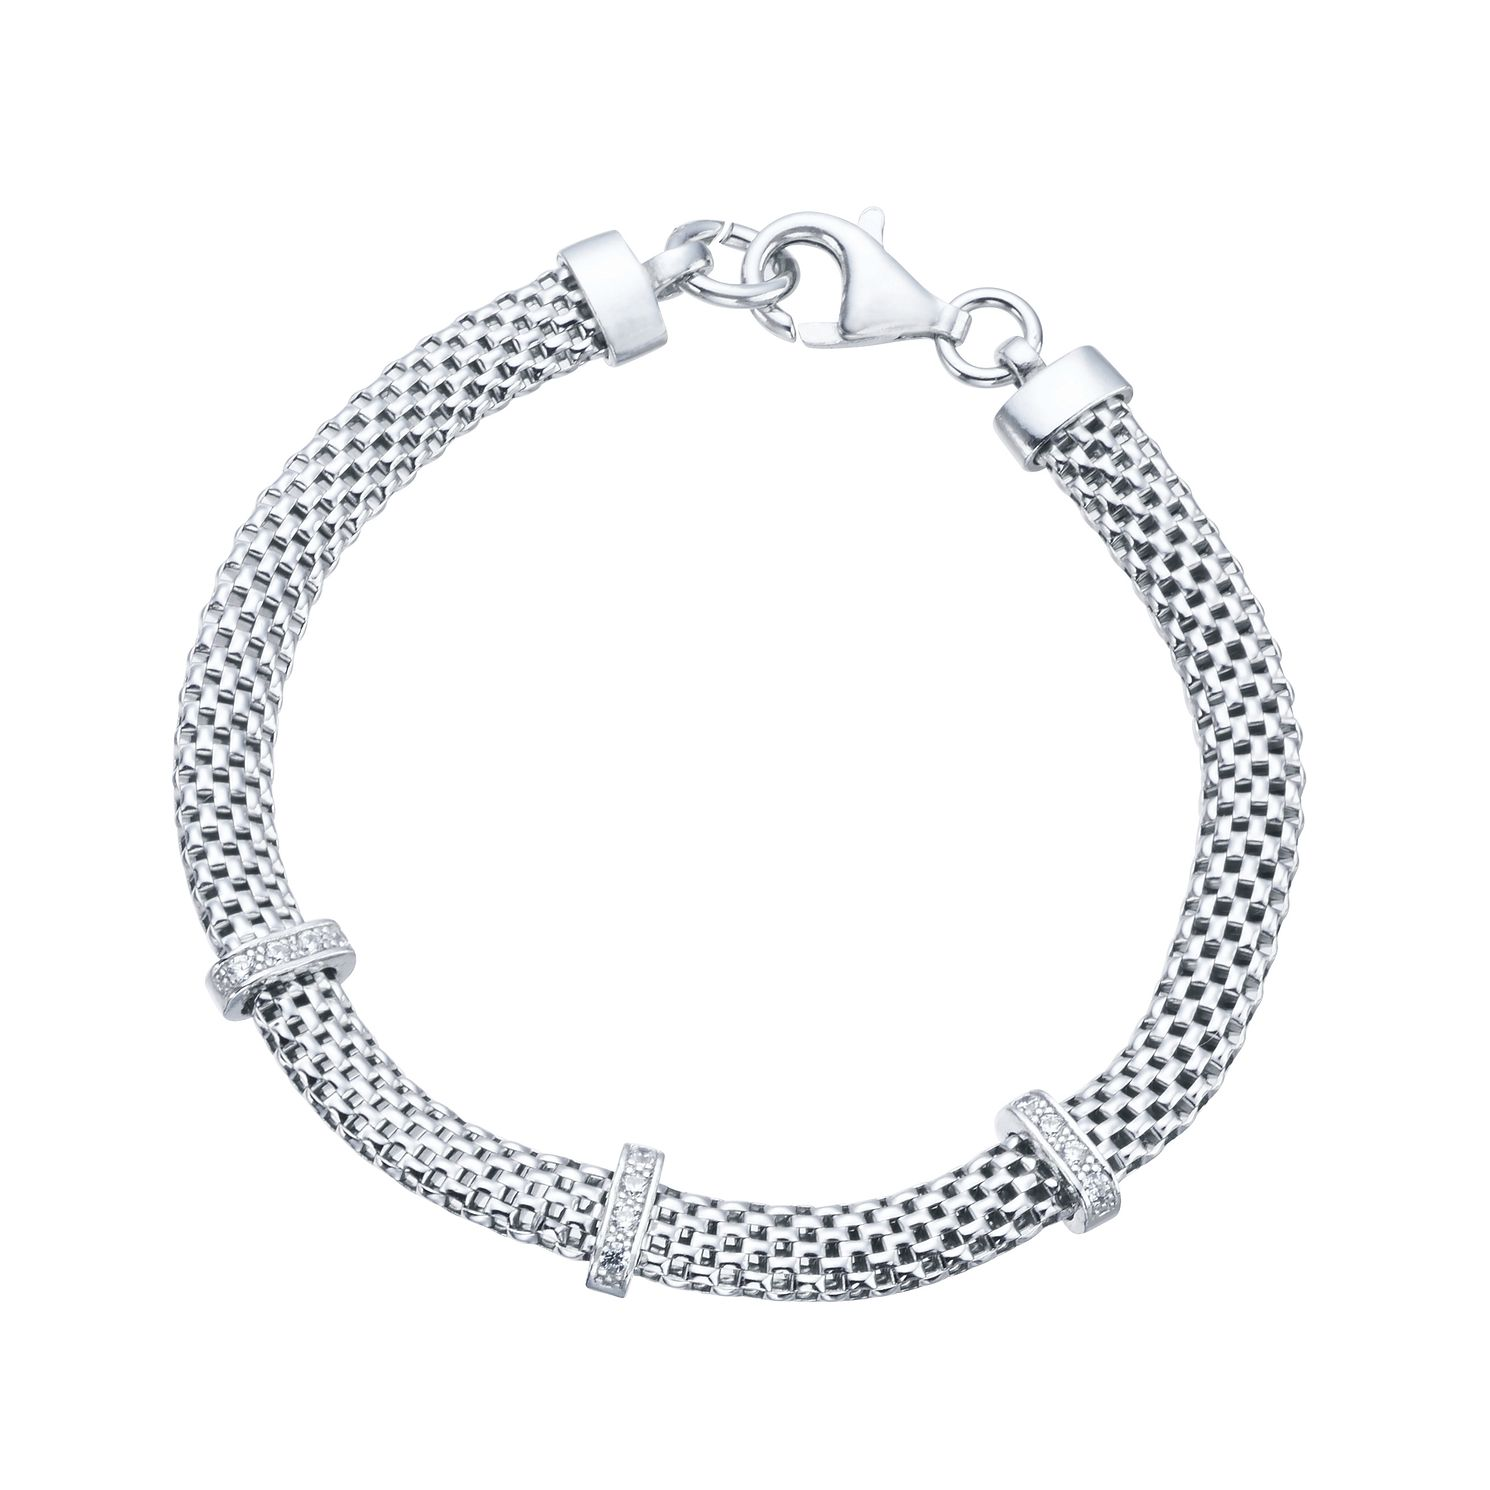 Silver Rhodium Plated Cubic Zirconia Bar Bracelet - Product number 9779949